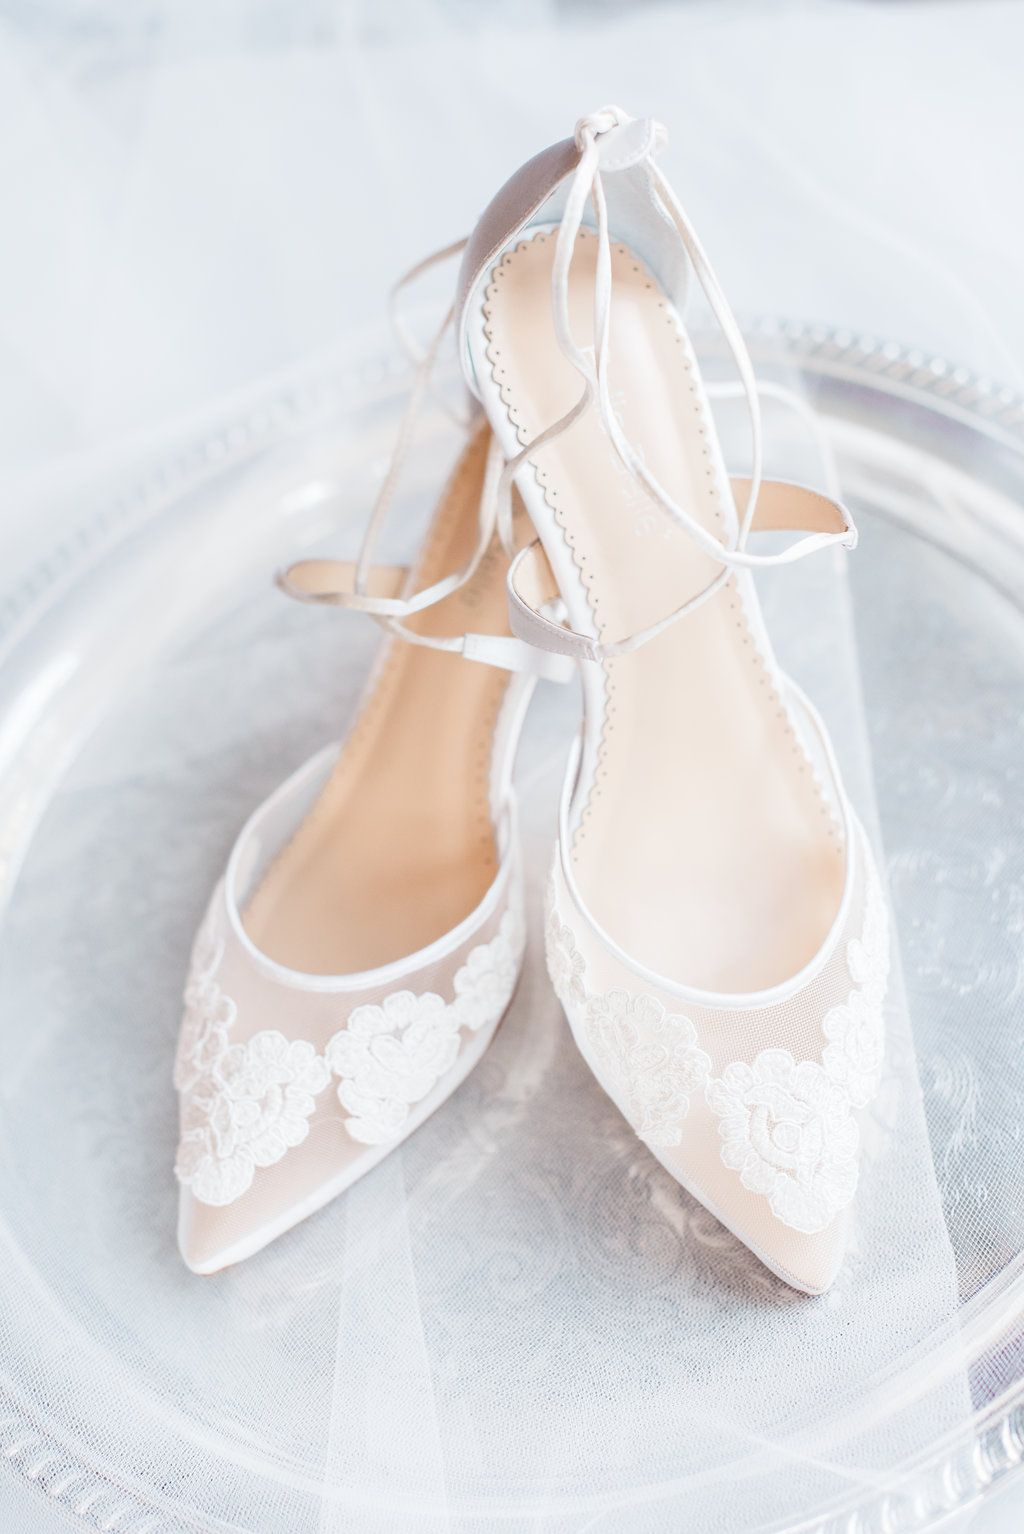 280c5b2c8 We love our Amelia lace kitten heel low heel ivory wedding shoe on our  #realbride